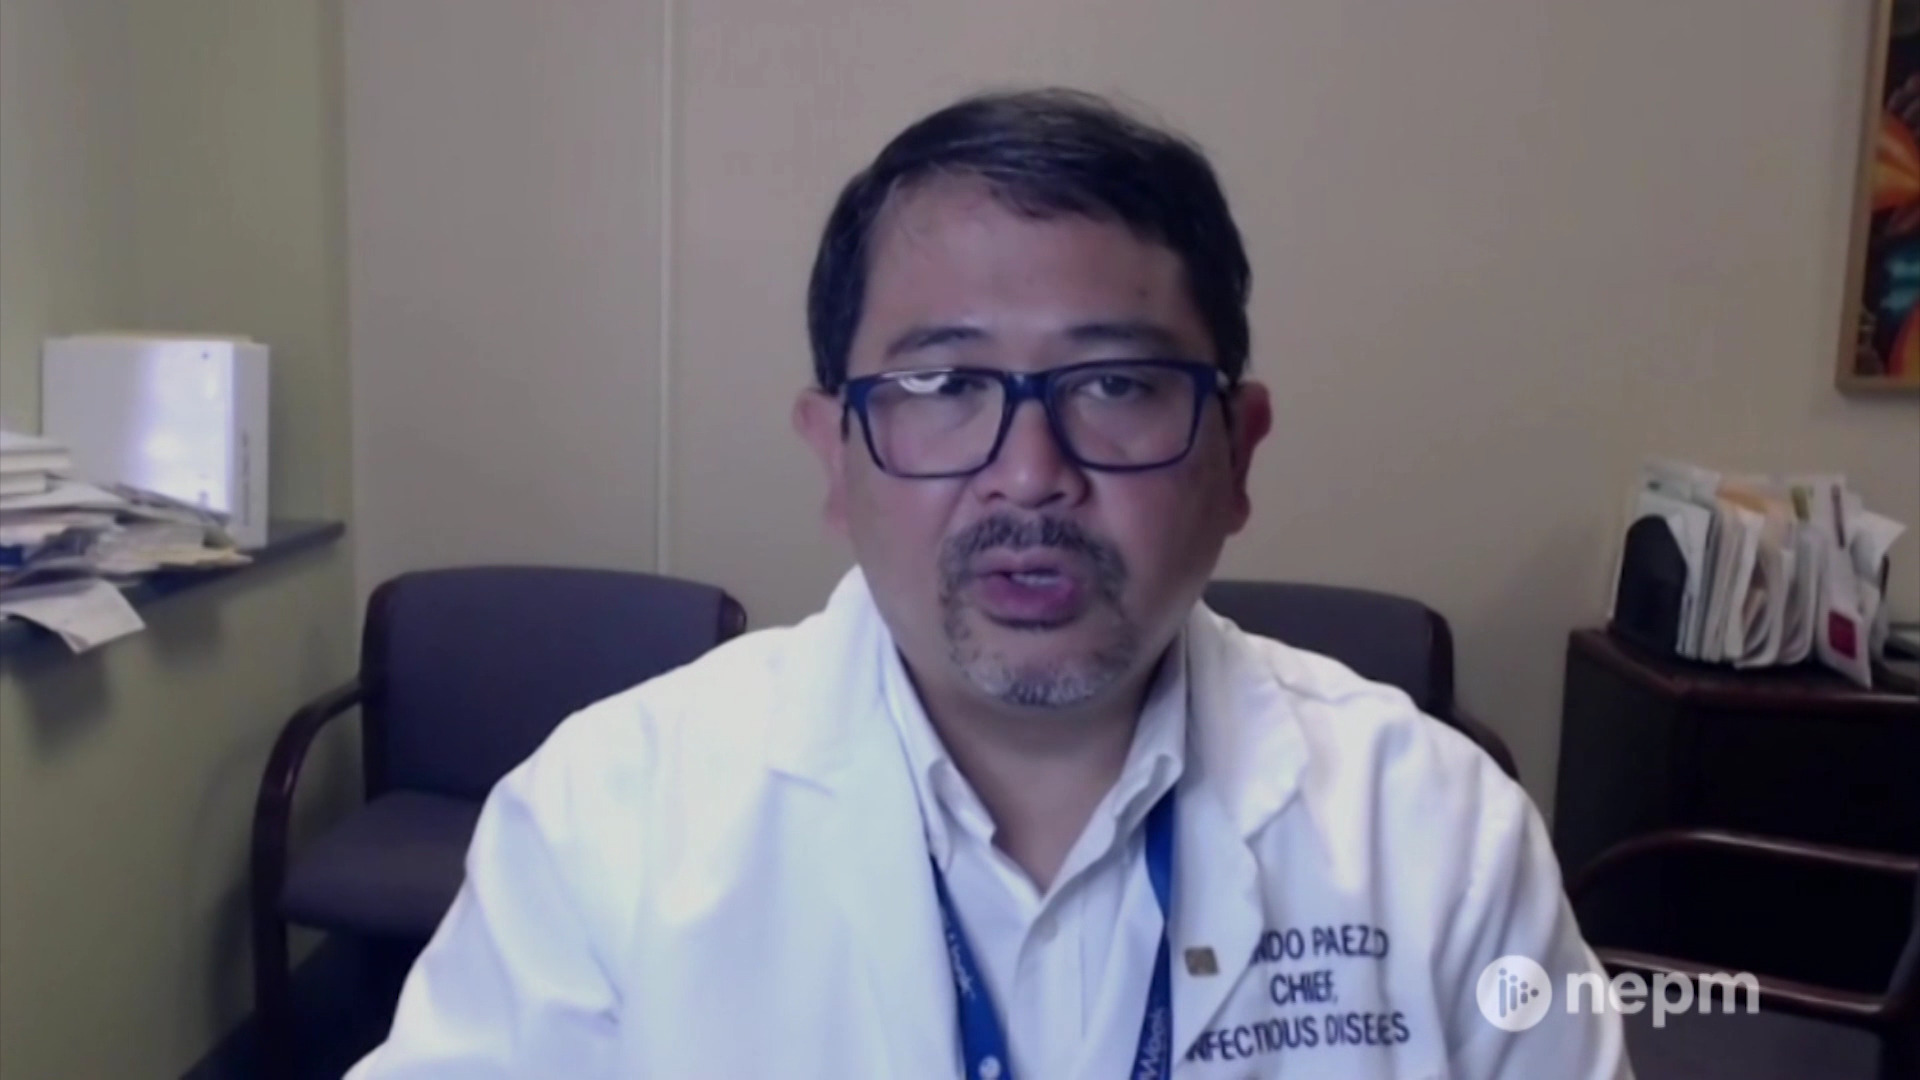 WATCH: Baystate Health's Dr. Armando Paez discusses how colleges and universities can safely welcome back students during the pandemic.